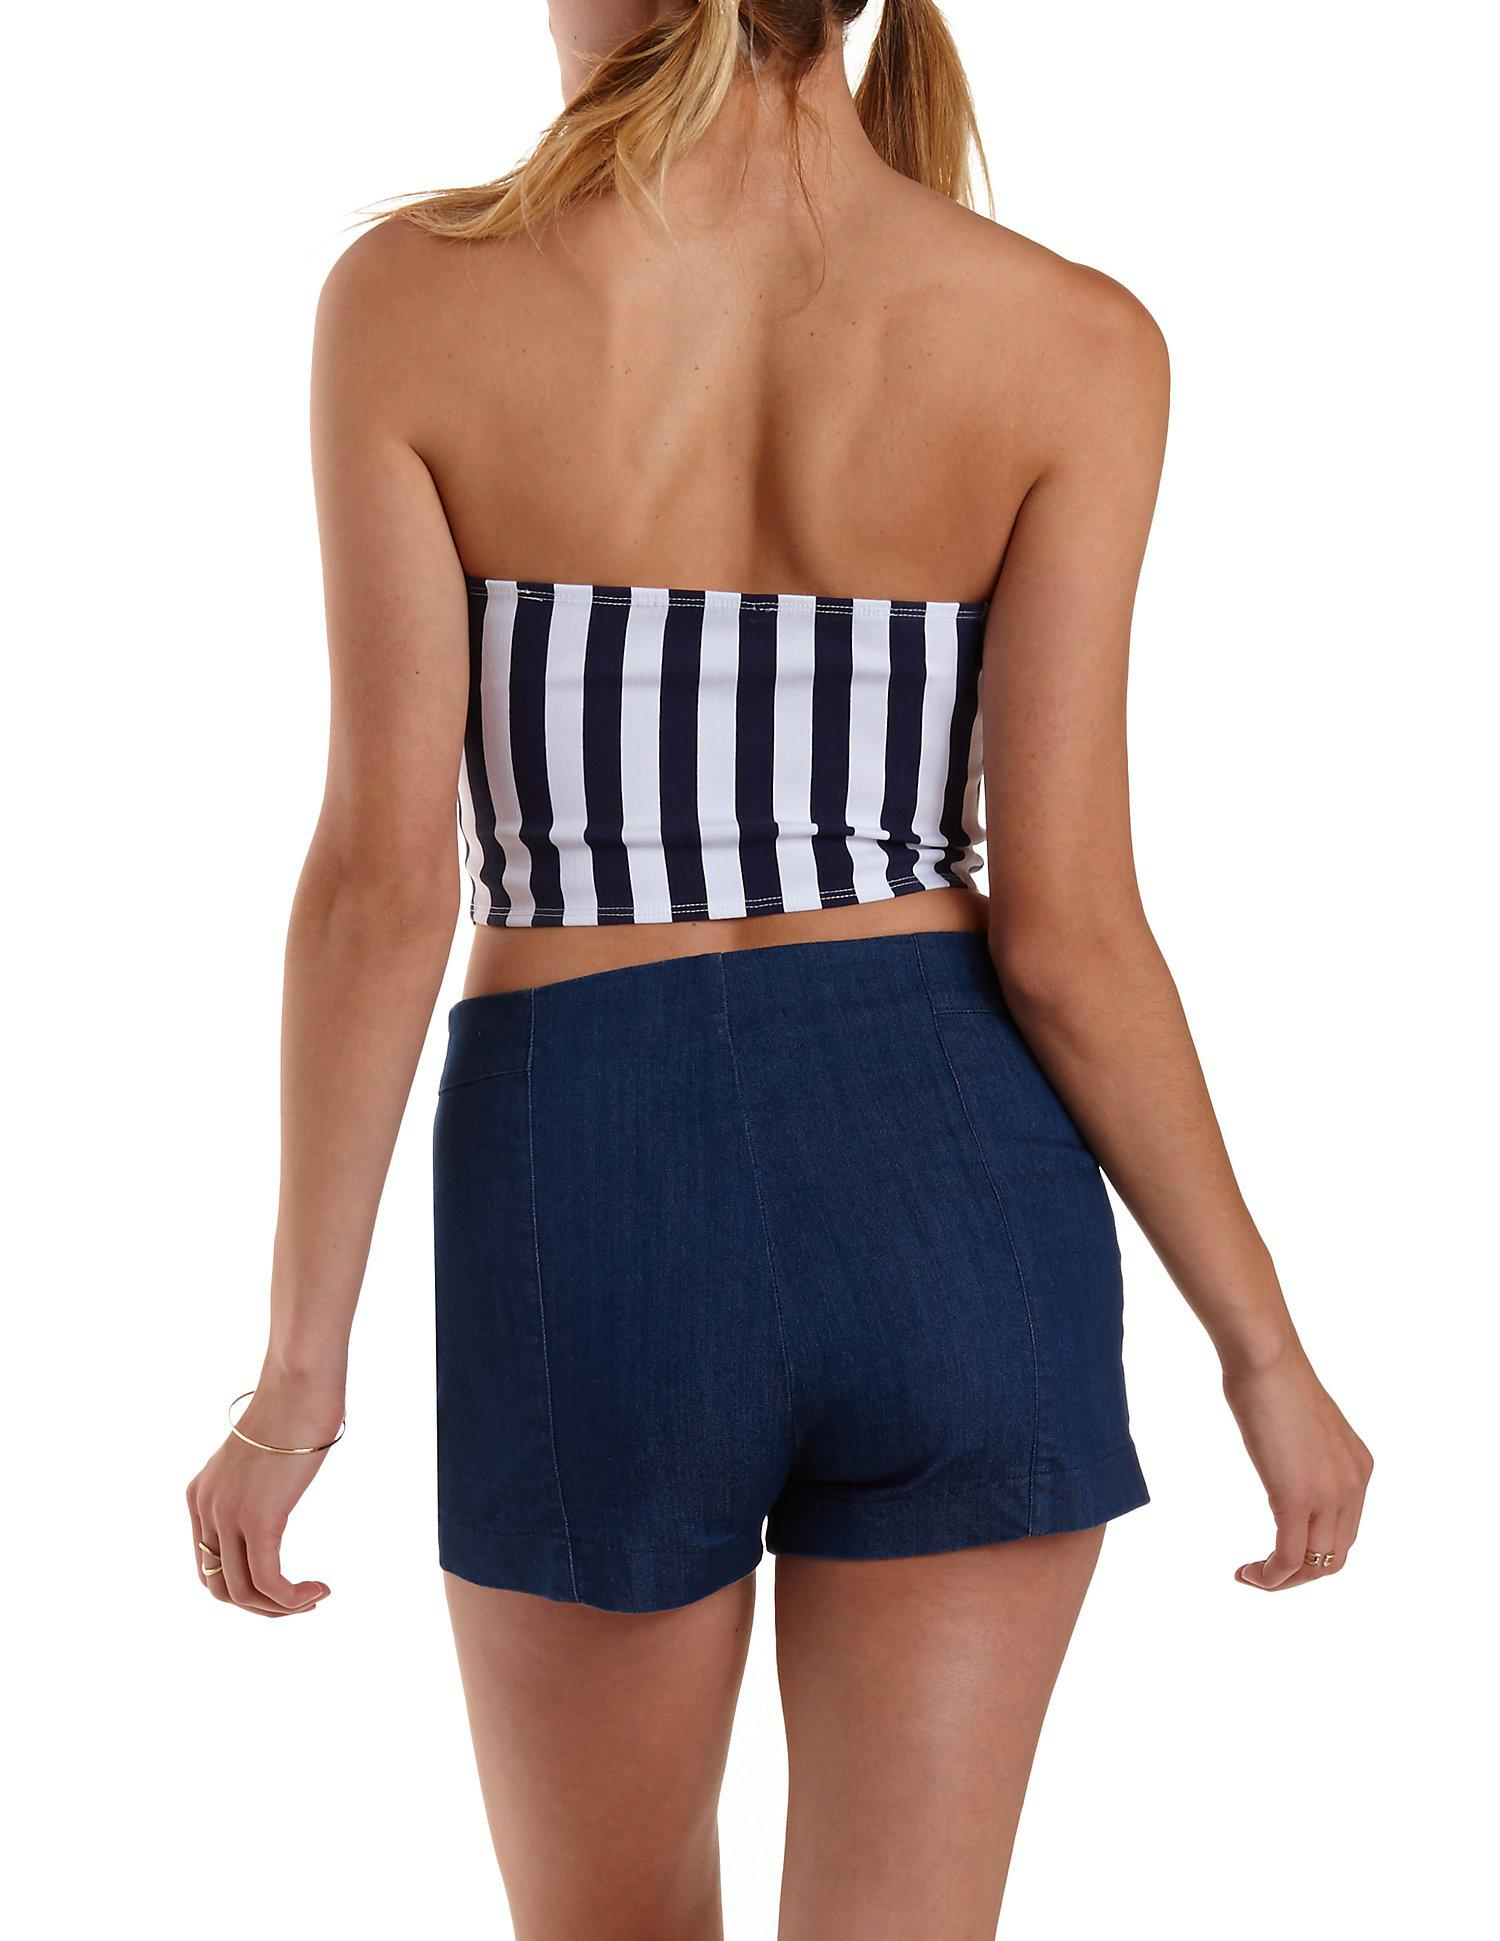 57e2df39c76 Lyst - Charlotte Russe Striped Bow-front Tube Top in Blue